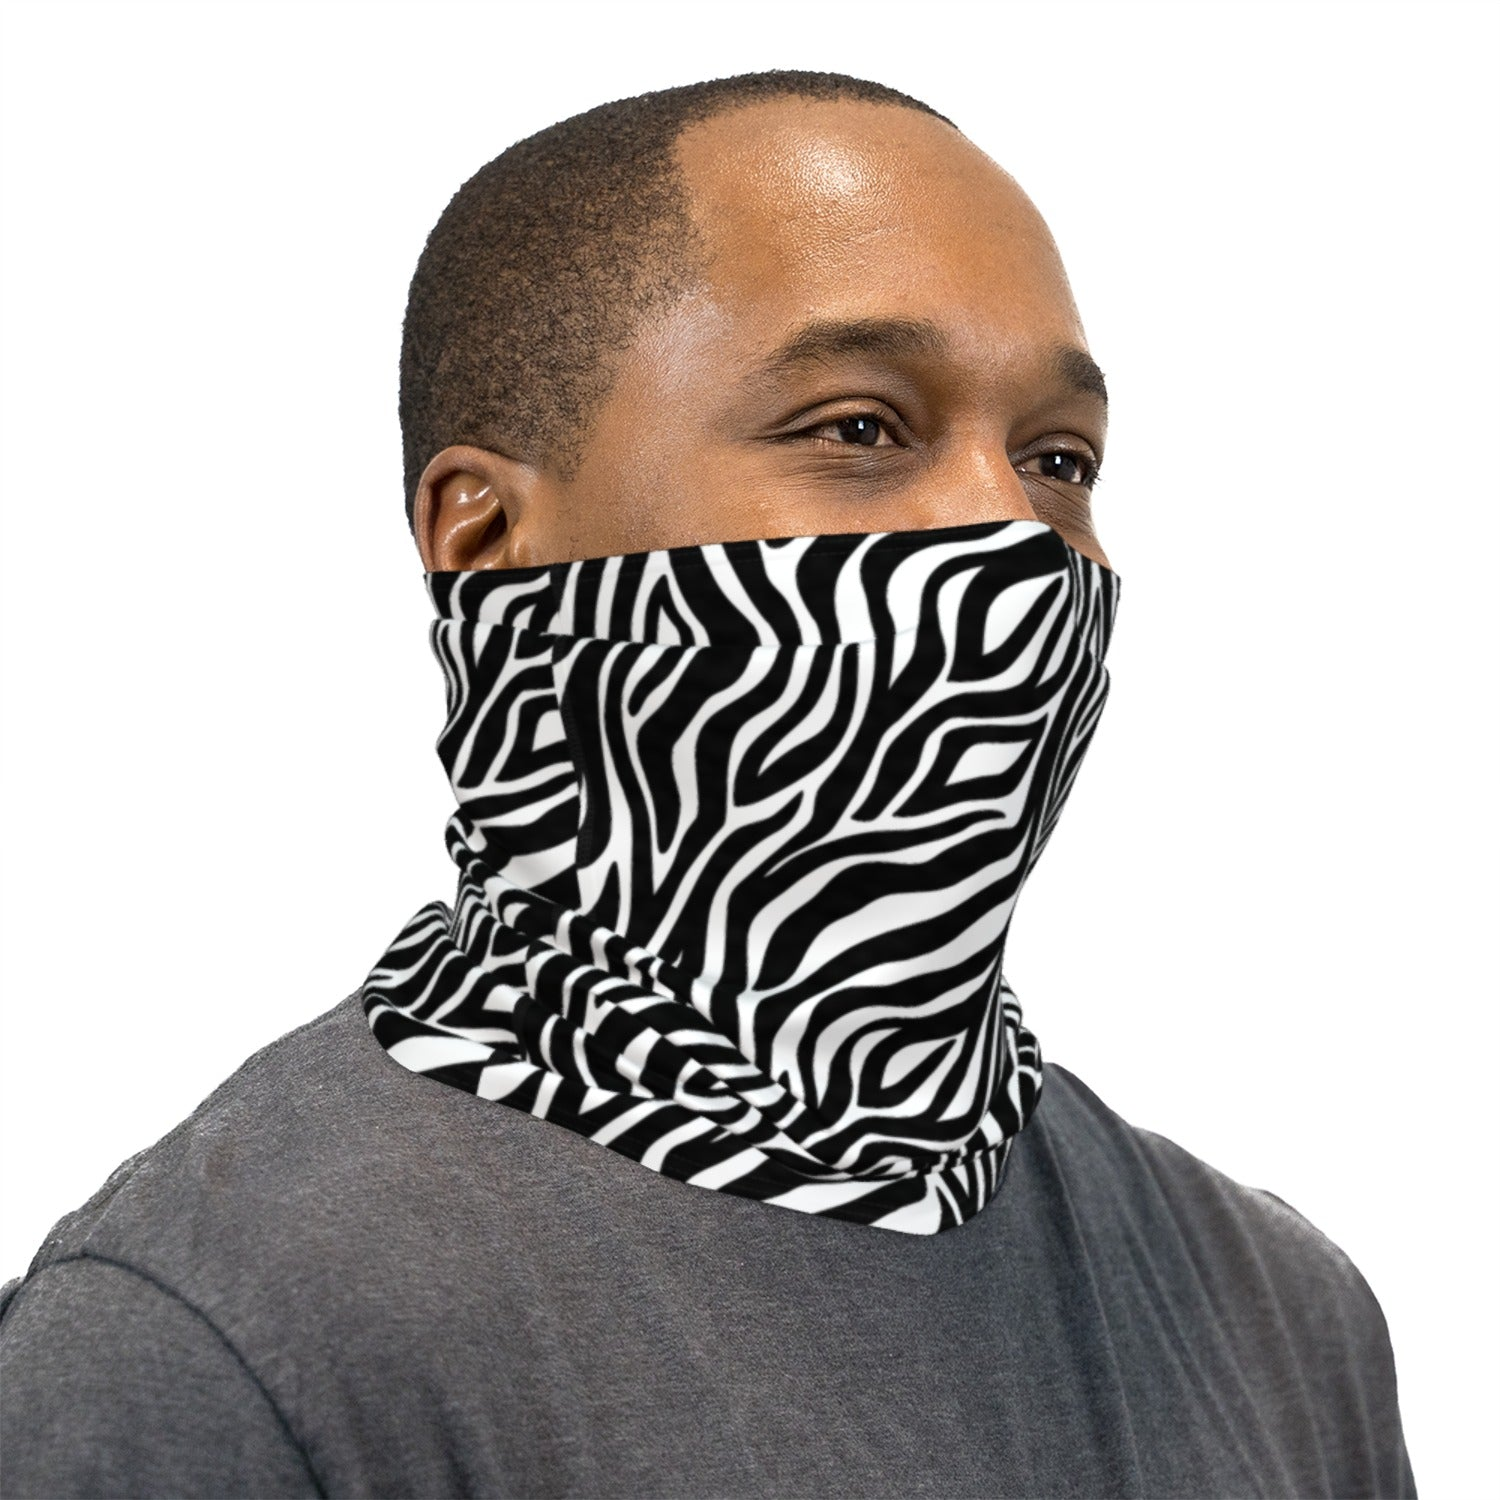 Zebra Print Neck Gaiter Face Mask